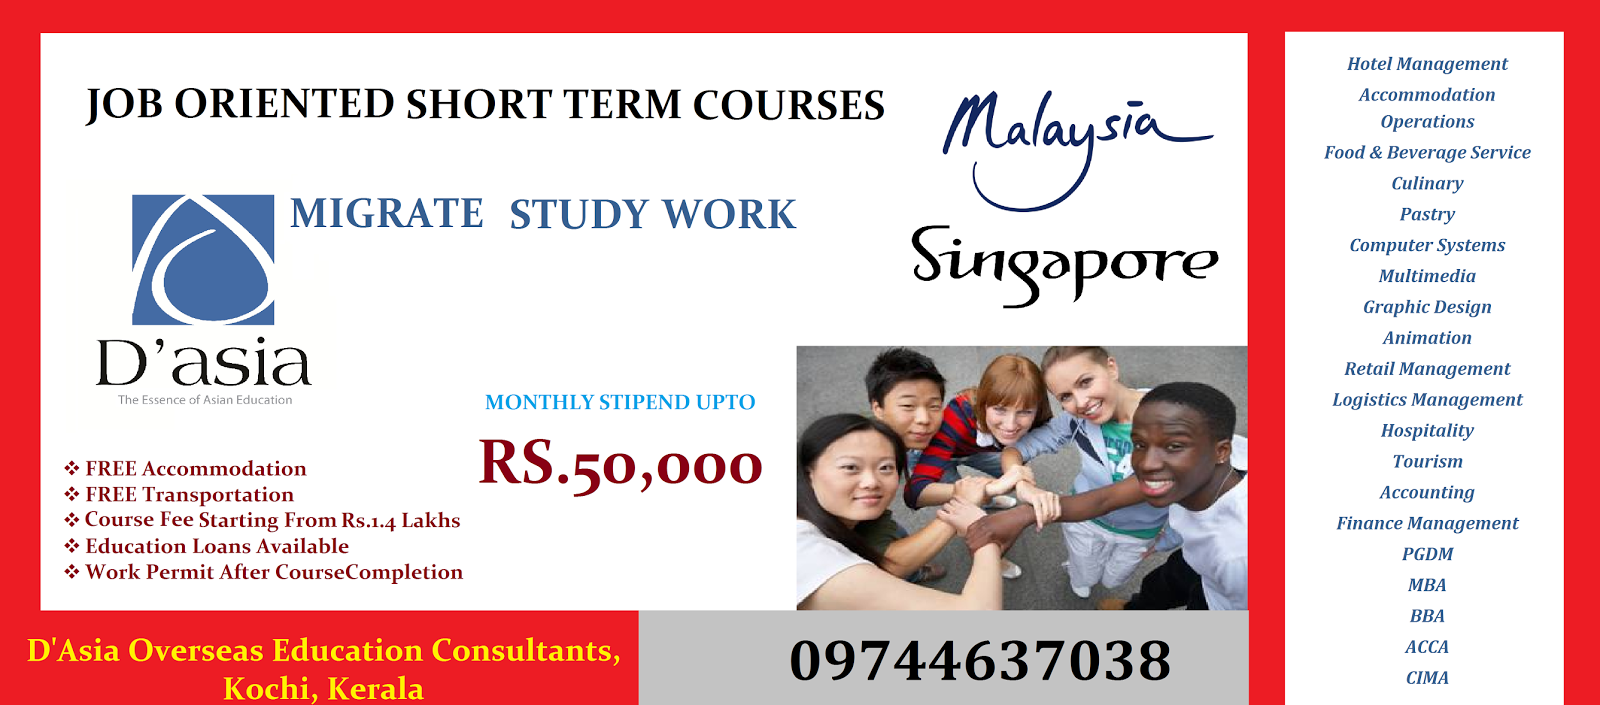 d asia overseas education consultants 2014 spend little and search a job by yourself contact d asia overseas education consultants to know more about cheaper yet job oriented courses abroad